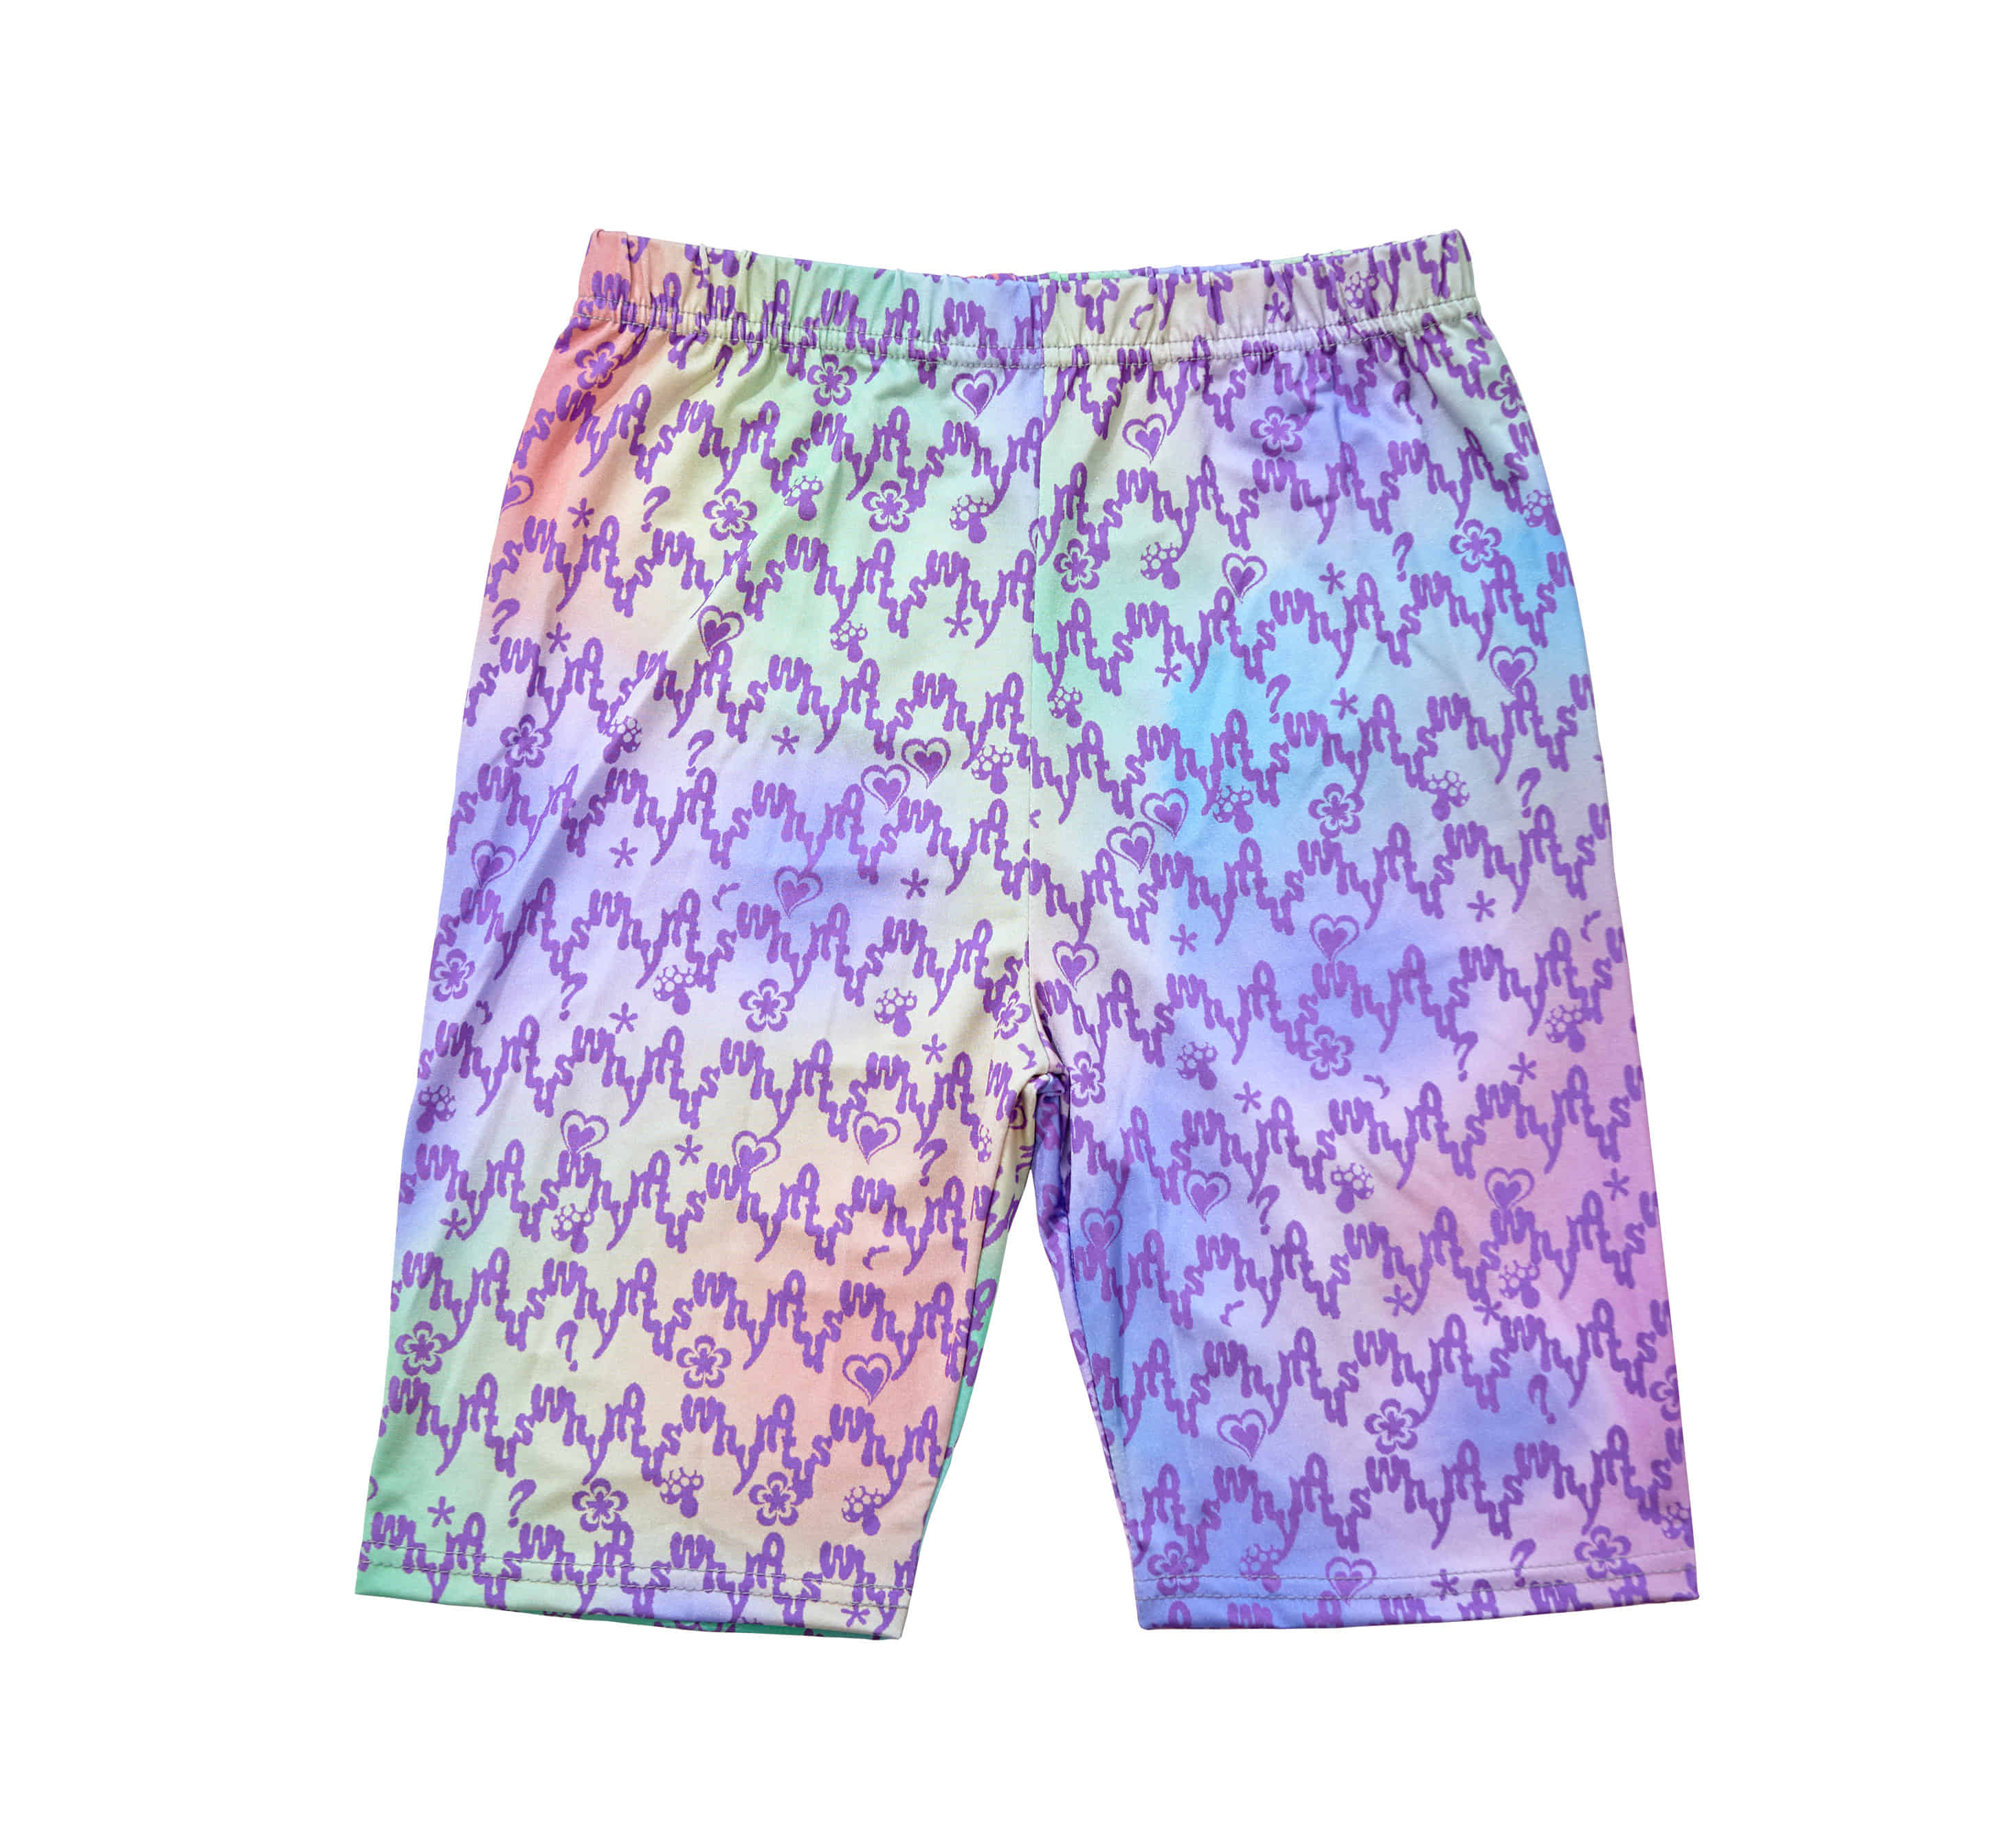 WNUS x RMHN bike shorts - cotton candy